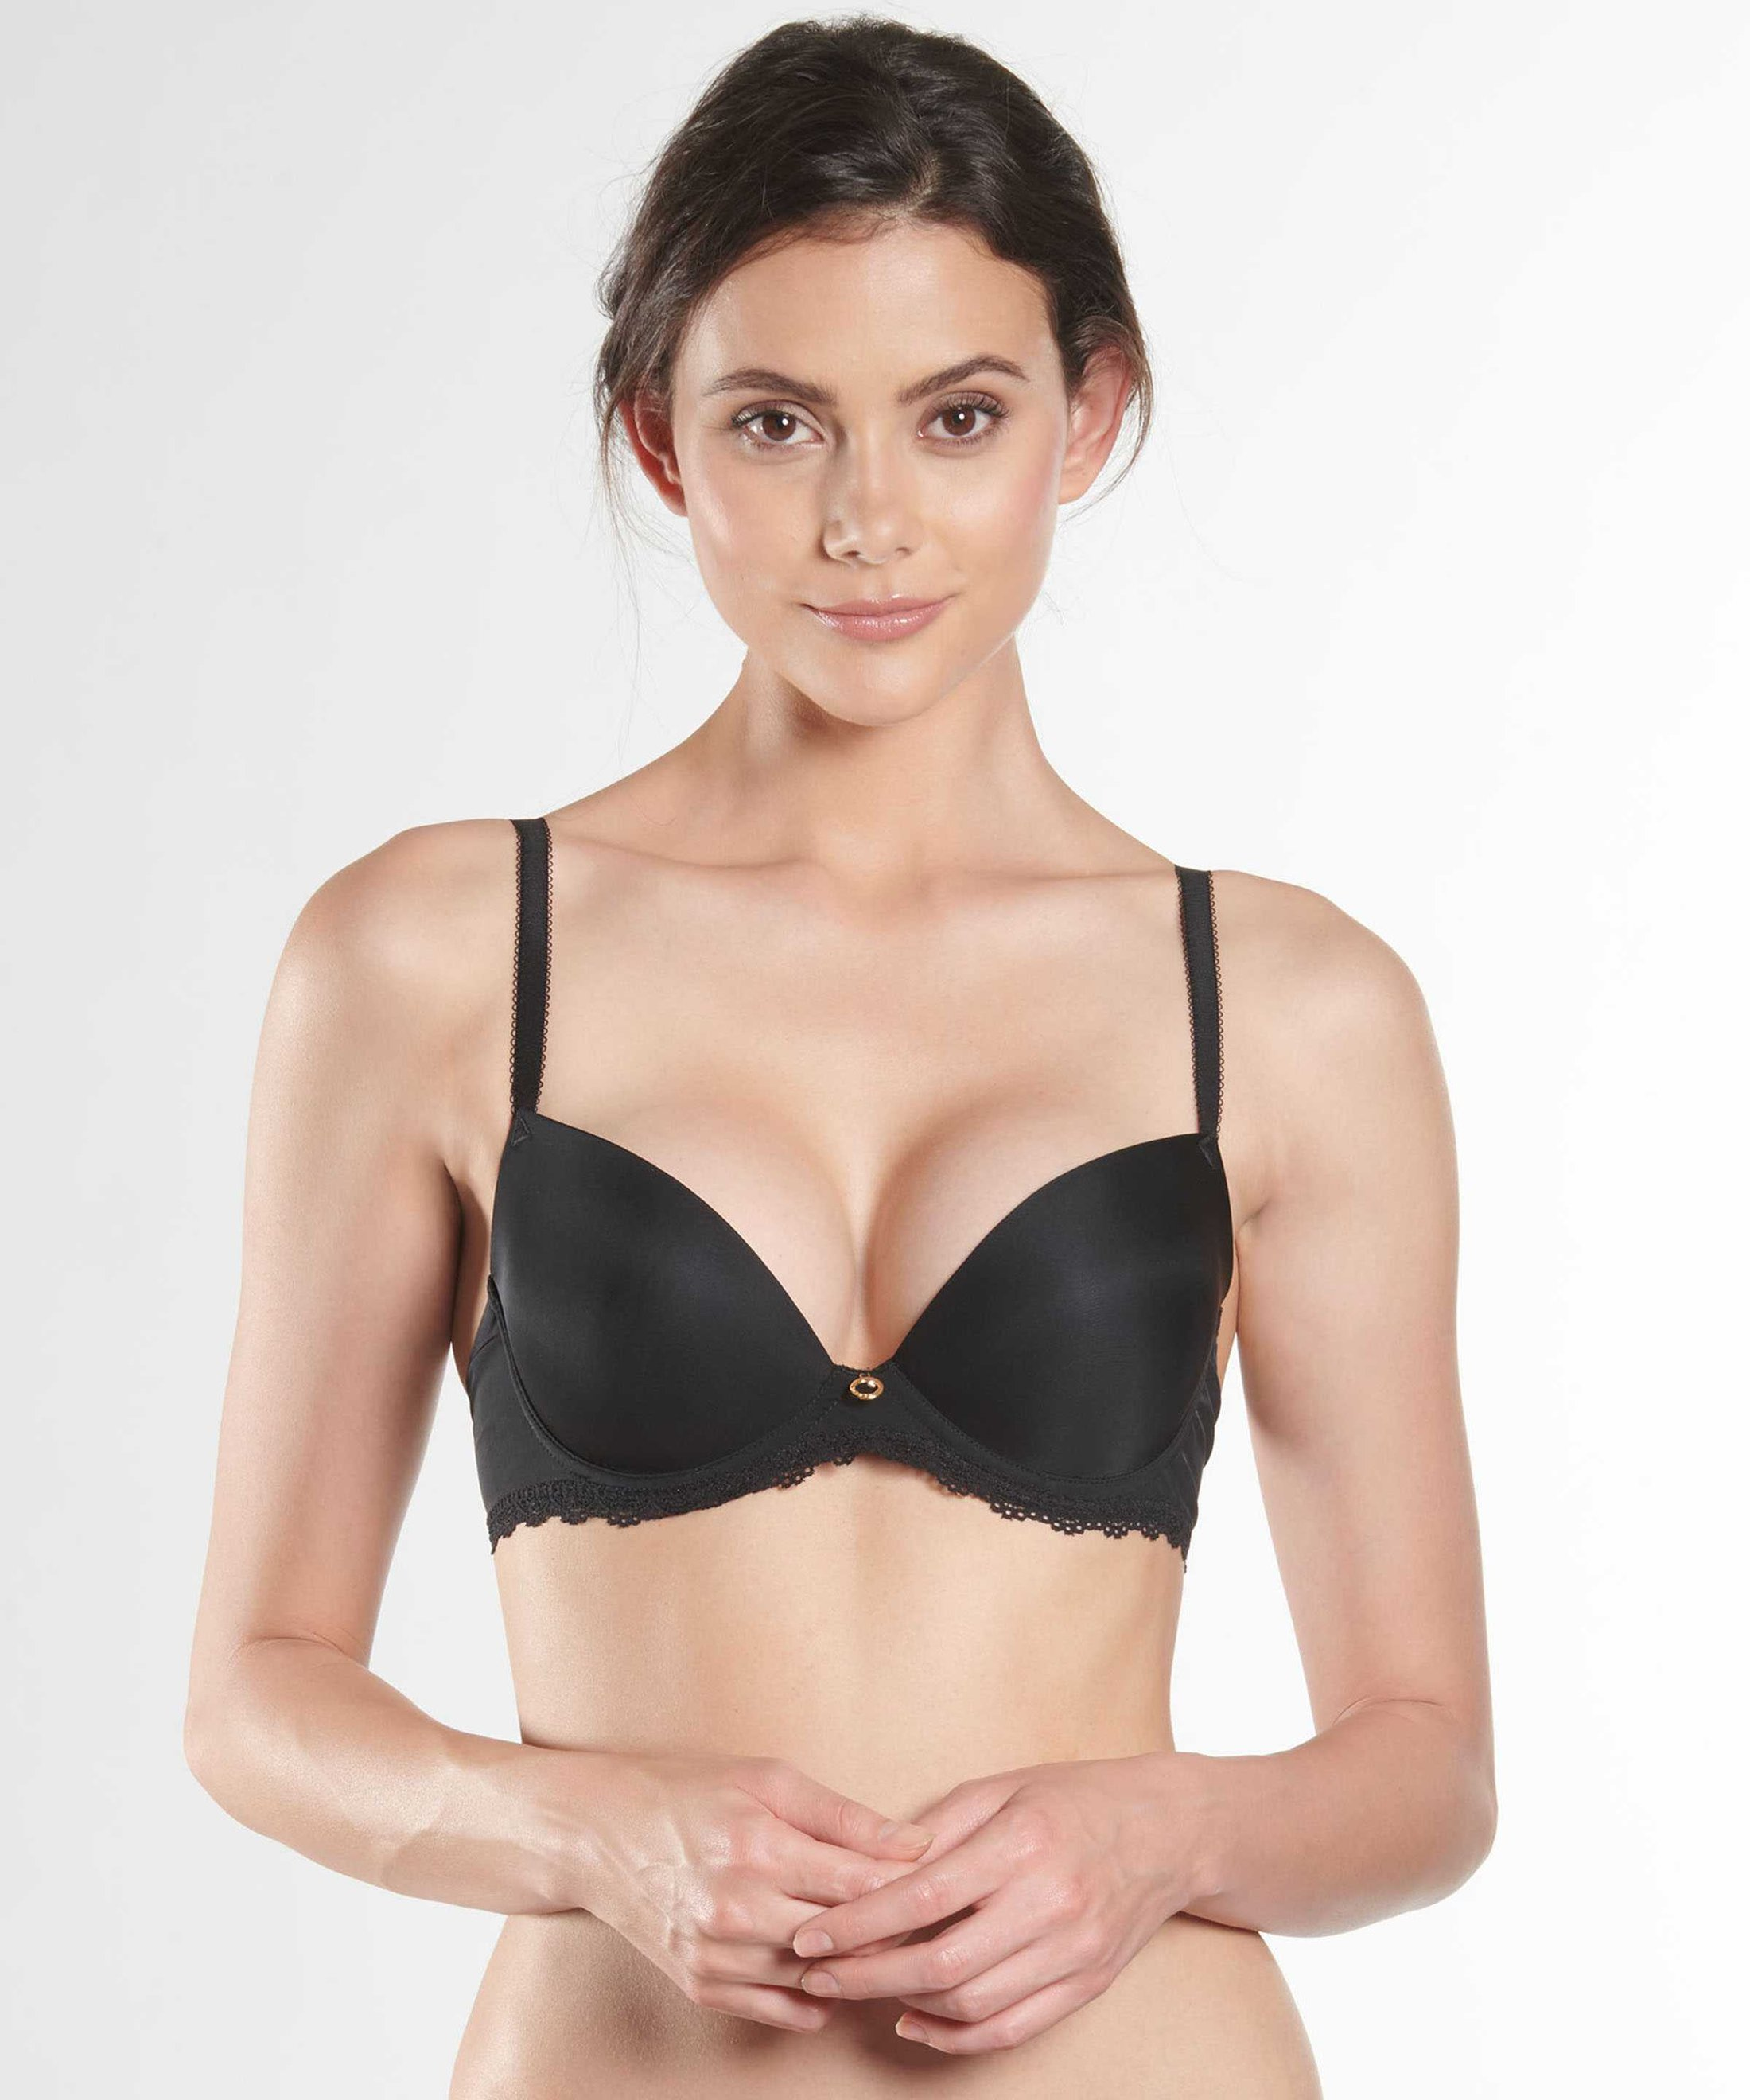 LYSESSENCE Moulded push-up bra Black | Aubade